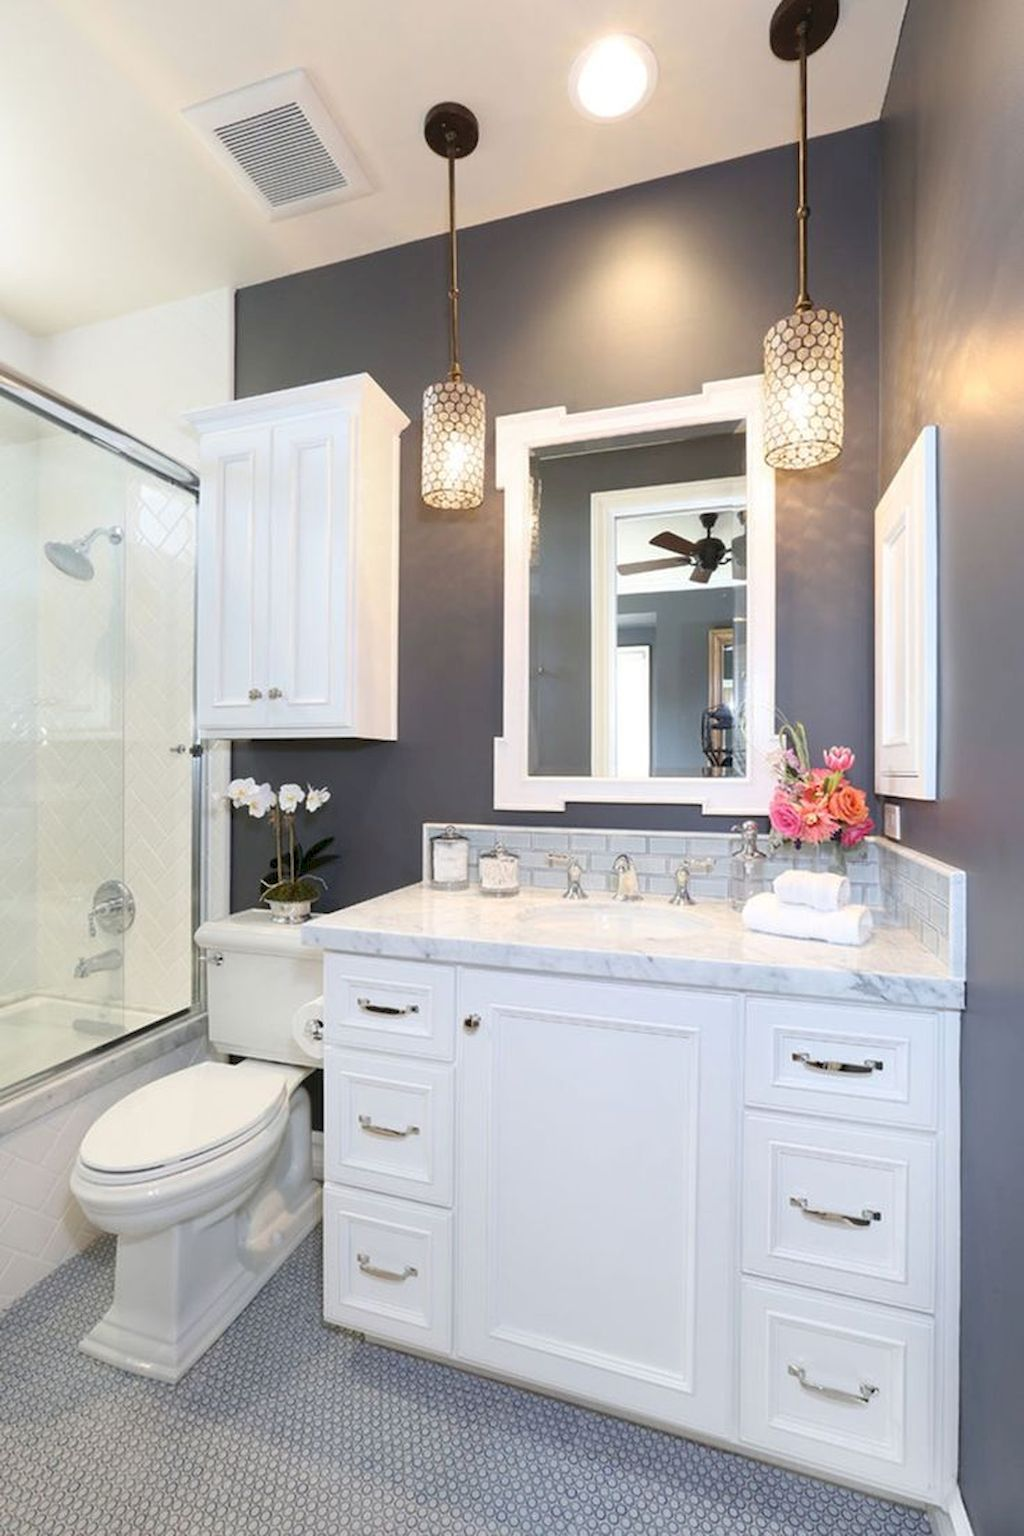 gorgeous 40 graceful tiny apartment bathroom remodel ideas on bathroom renovation ideas on a budget id=24582